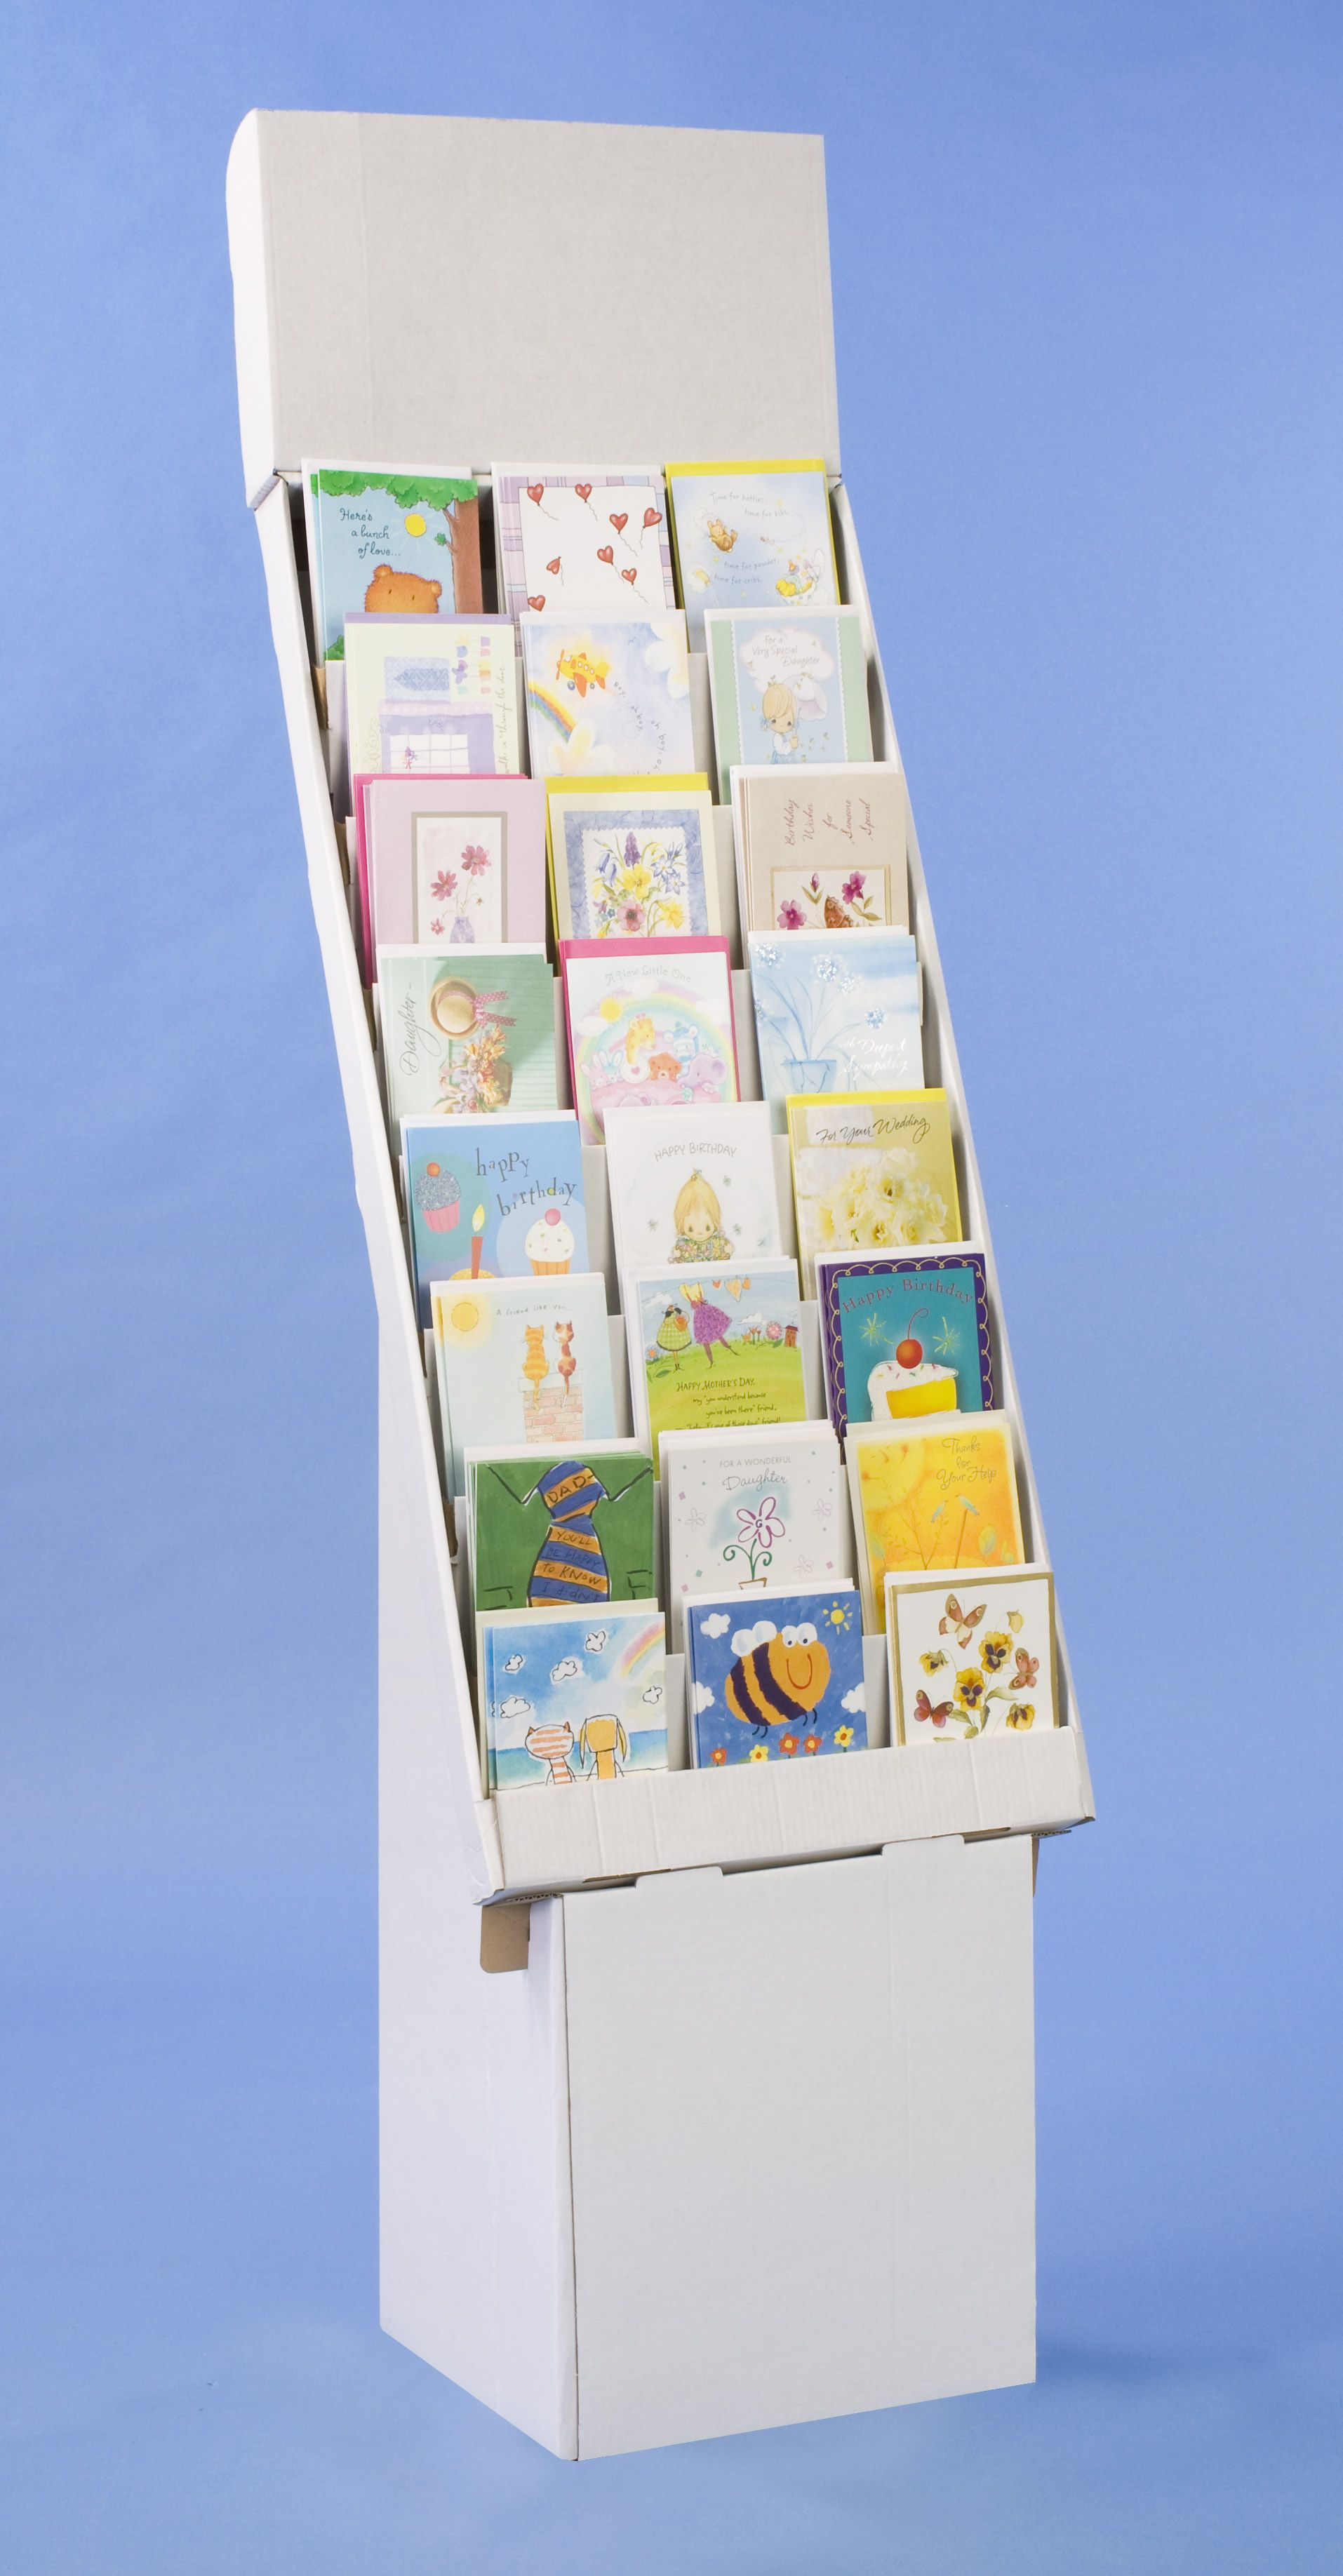 Cardboard Greeting Card Display For Floor 8 Tiers Removable Header